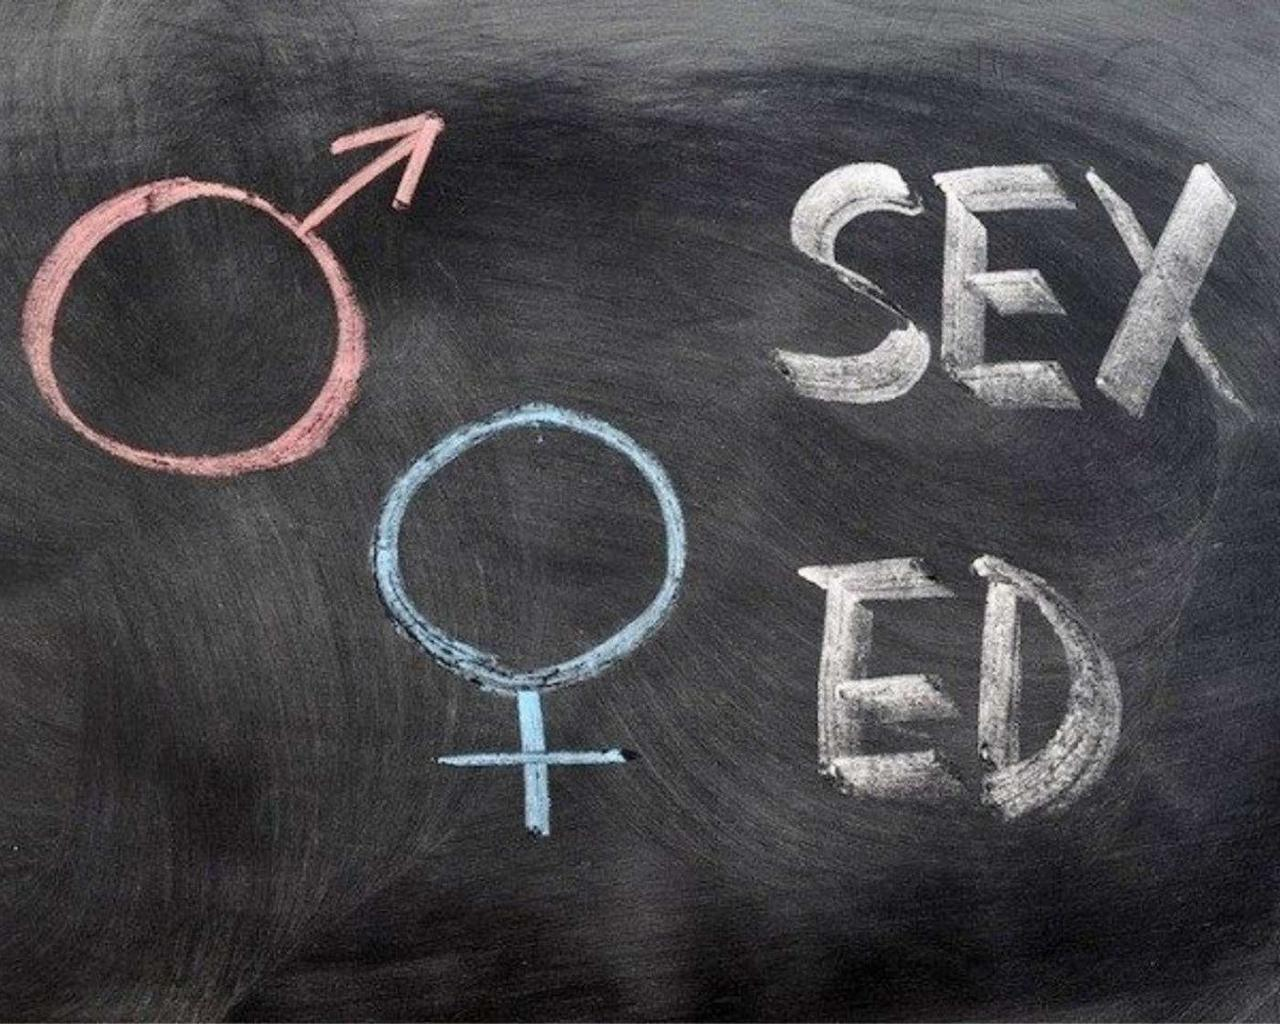 Co-Ed Sex Education Class Being Taught To 12-Year-Old Middle Schoolers—Say What?